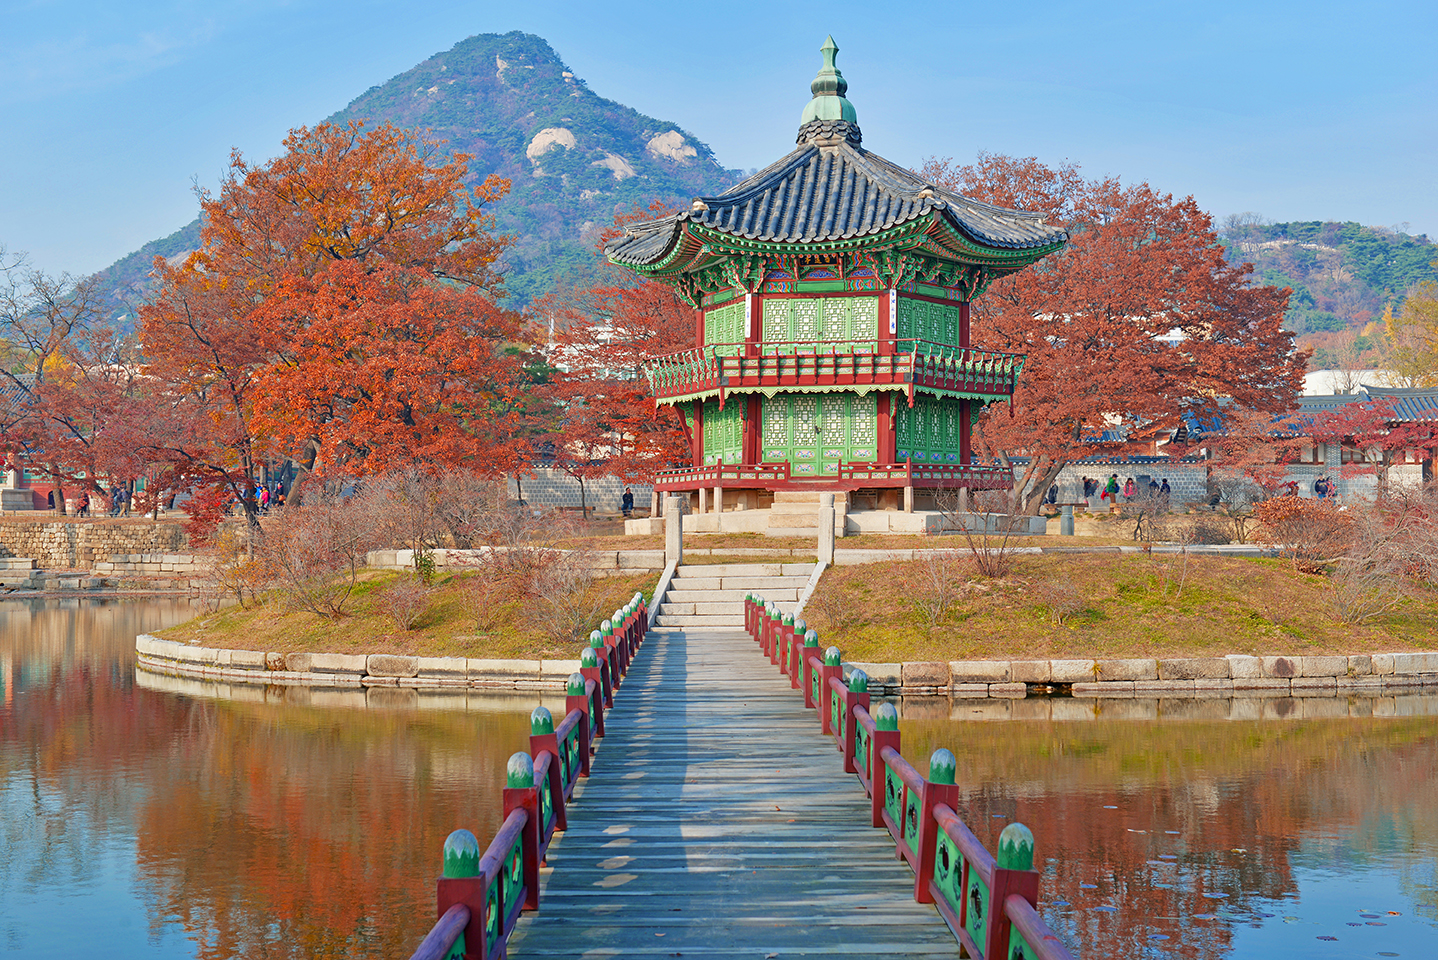 Starting Our List Is Seoul One Of The Gest Cities In Korea Has A Vibrant Culture And Known For Its Y Food Equally Nightlife